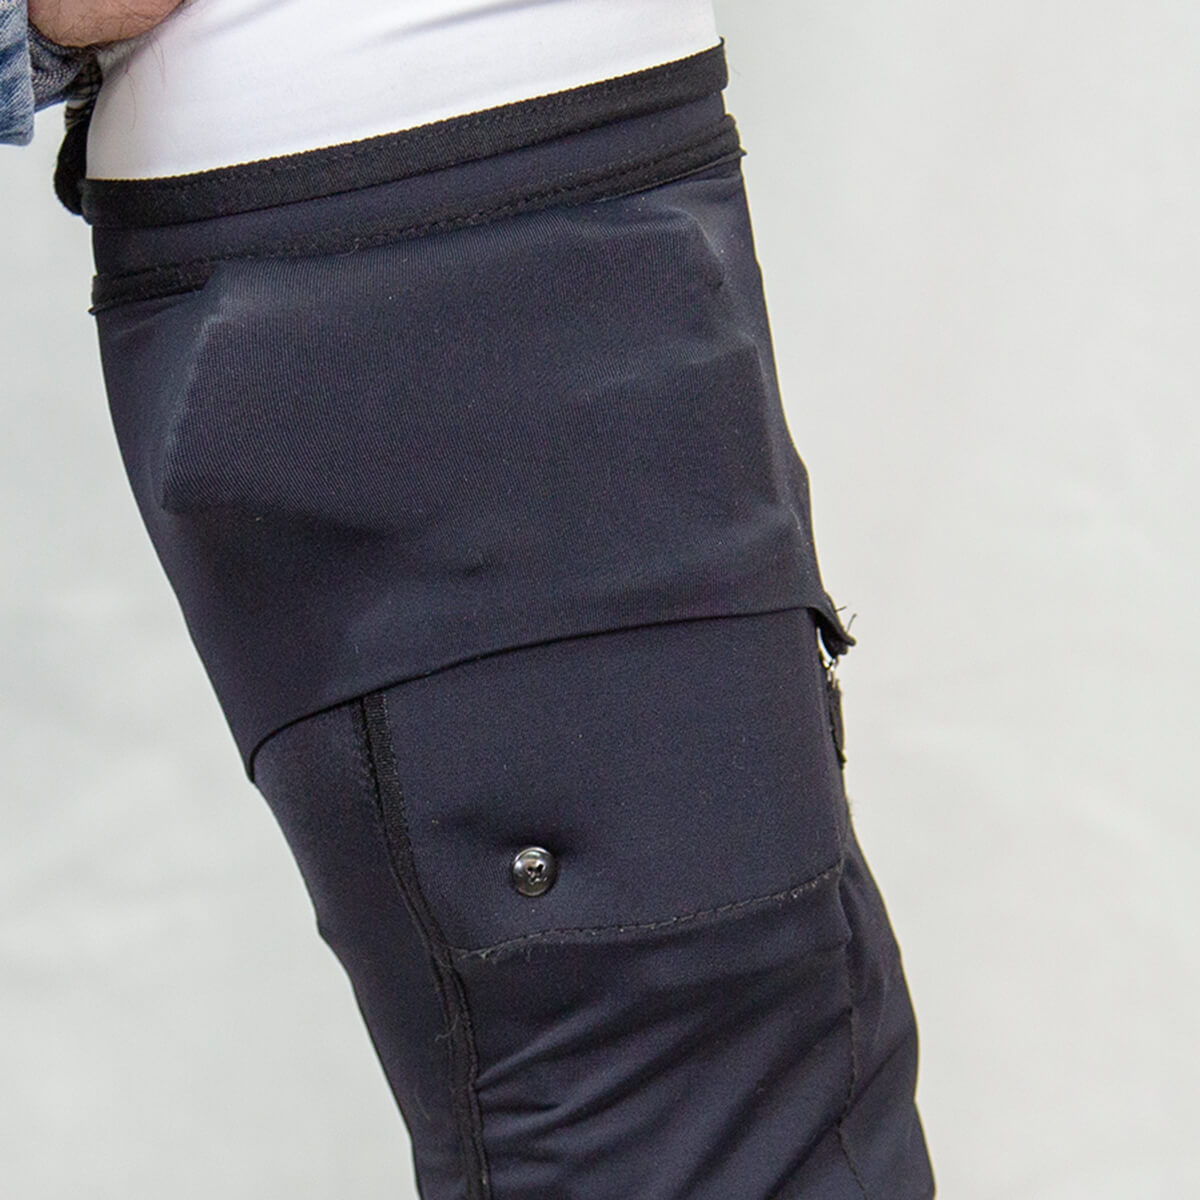 470744_Mid-Calf-Gun-Sox-Pro_Retention-Flap-covering_Side-view_8652